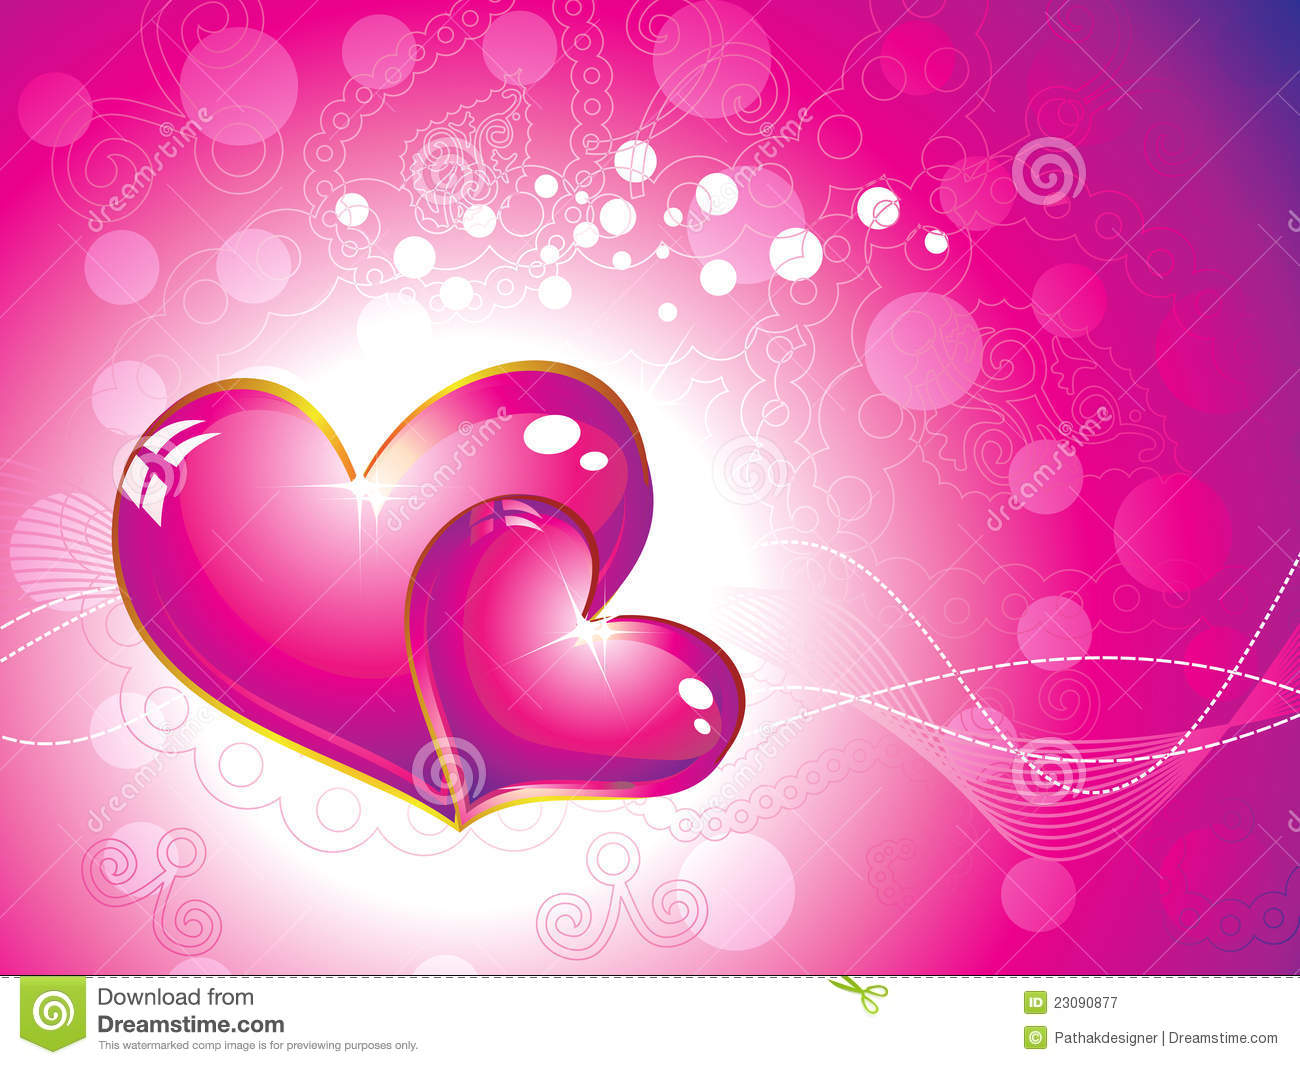 Abstract Pink Heart Wallpaper Royalty Free Stock